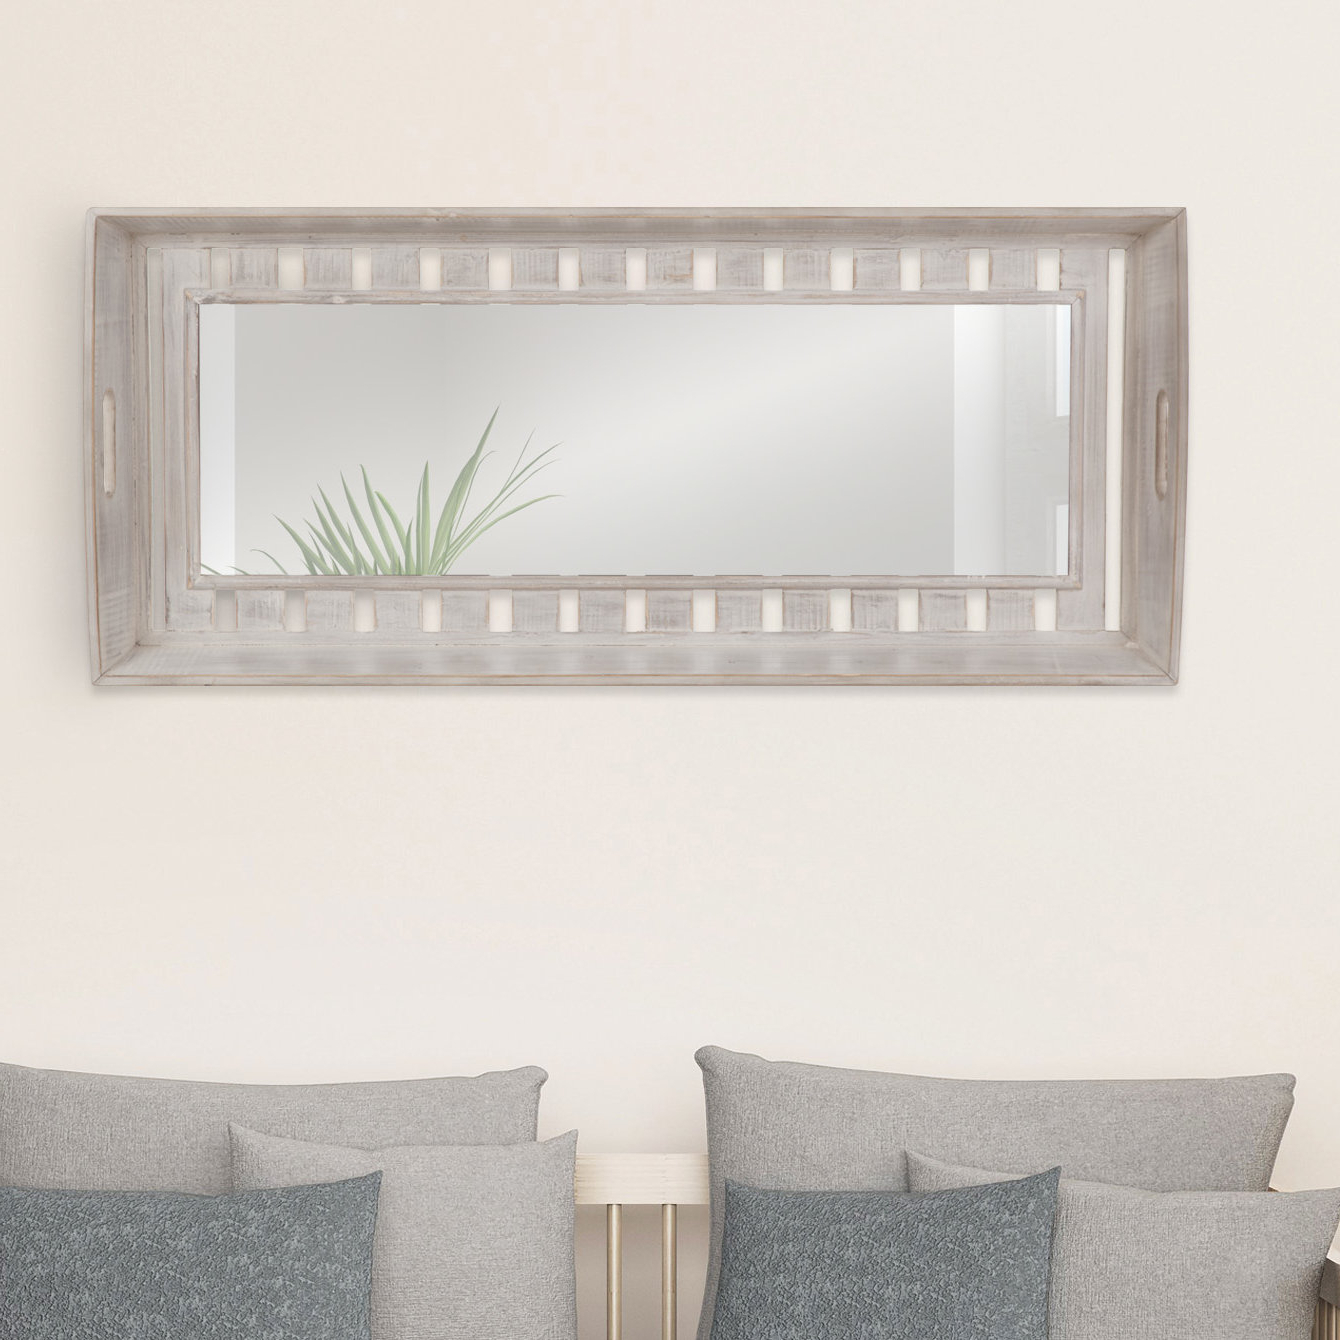 Widely Used Cecilia Rustic Wood Plank Accent Mirror With Regard To Epinal Shabby Elegance Wall Mirrors (View 17 of 20)